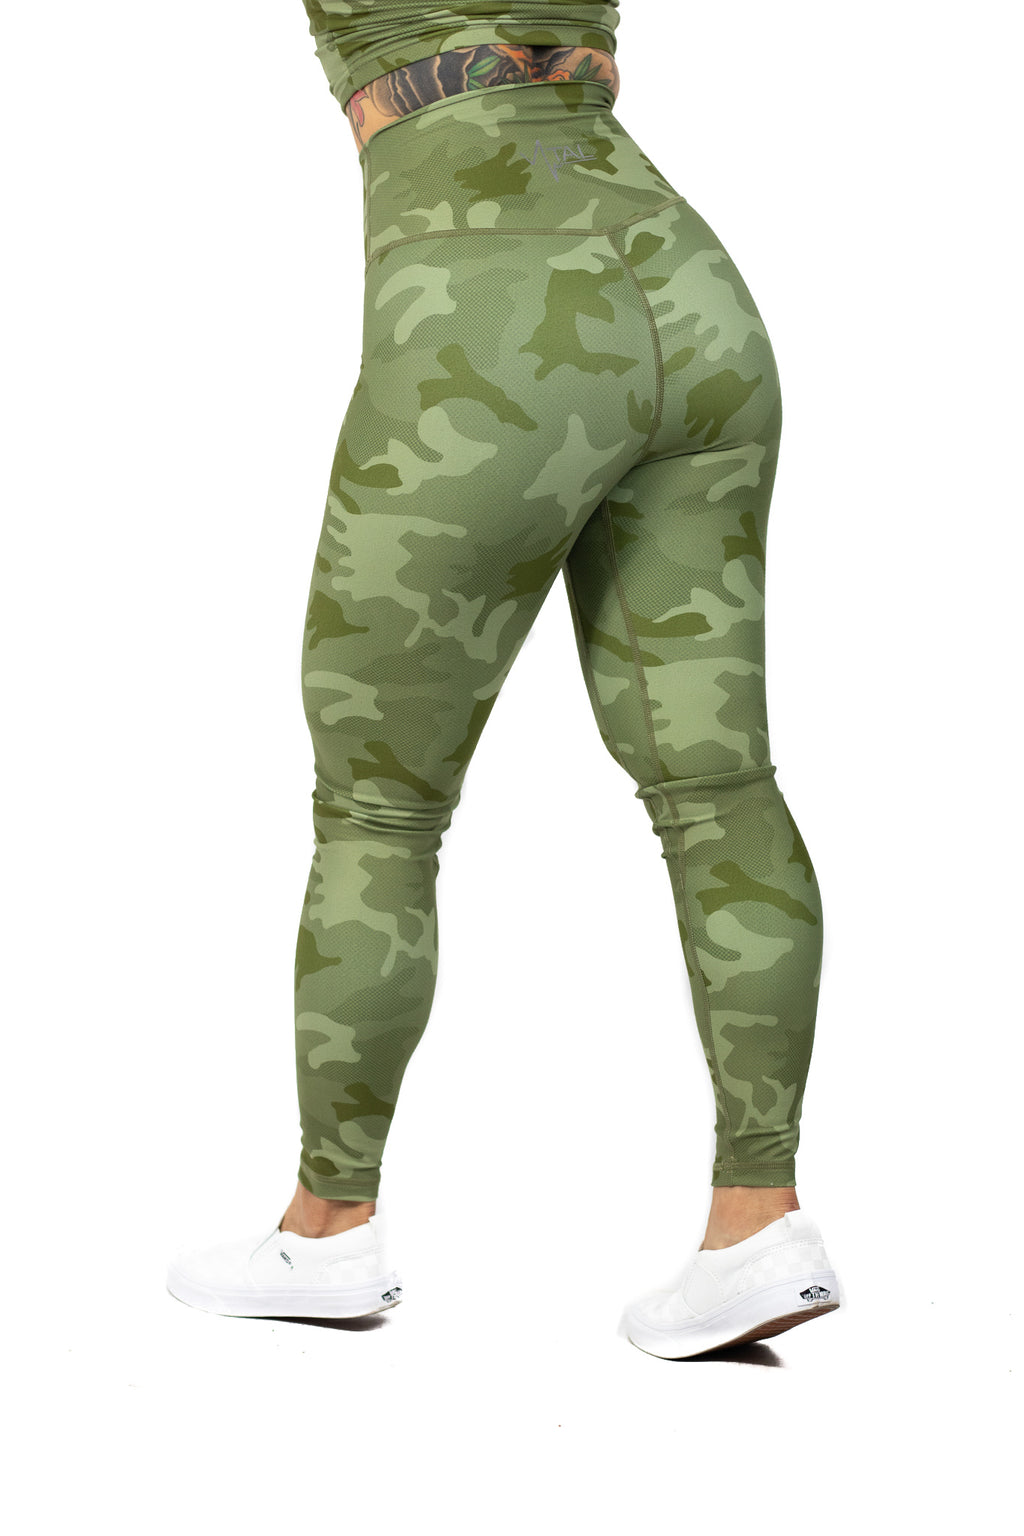 Plush V2 High Waisted Gym Workout Camo Leggings Women